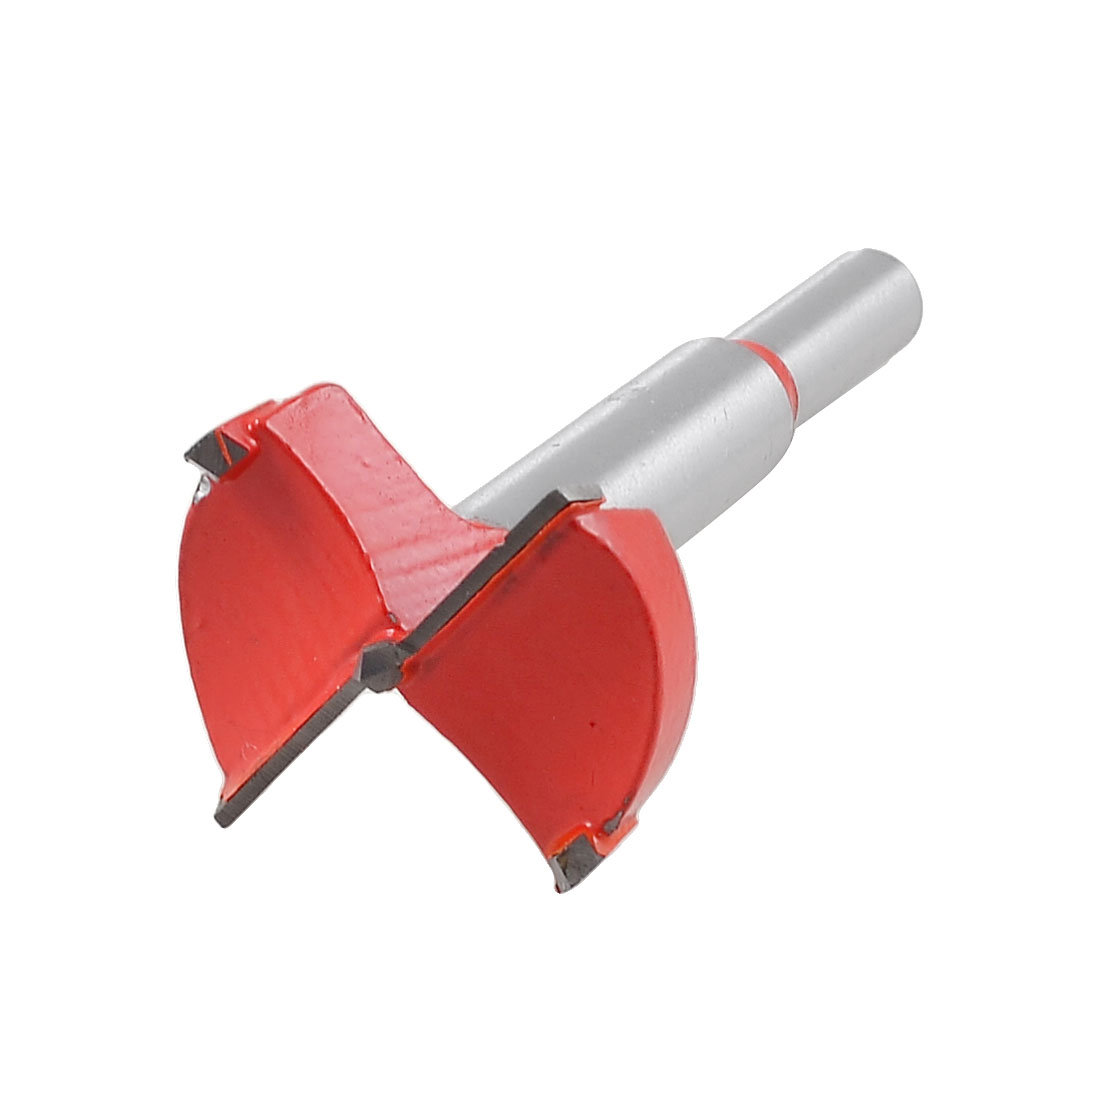 Carbide Tip 35mm Dia Boring Bit Woodworking Drill Tool Red Silver Tone